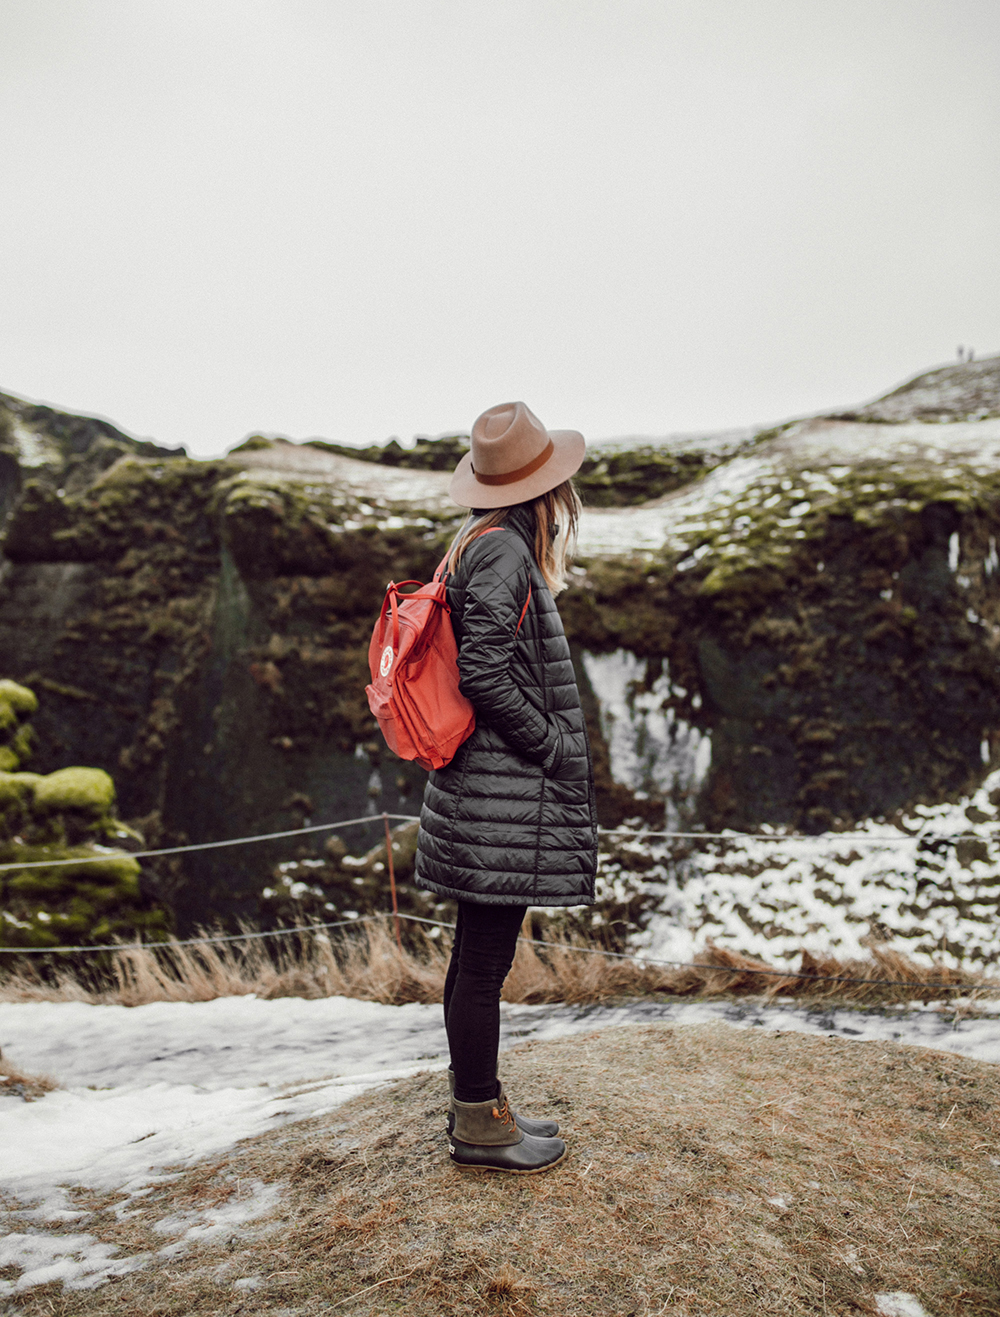 livvyland-blog-olivia-watson-travel-lifestyle-blogger-iceland-road-trip-what-to-do-pack-reykjavik-noken-travel-guide-Fjaðrárgljúfur-canyon-Kånken-Backpack-3